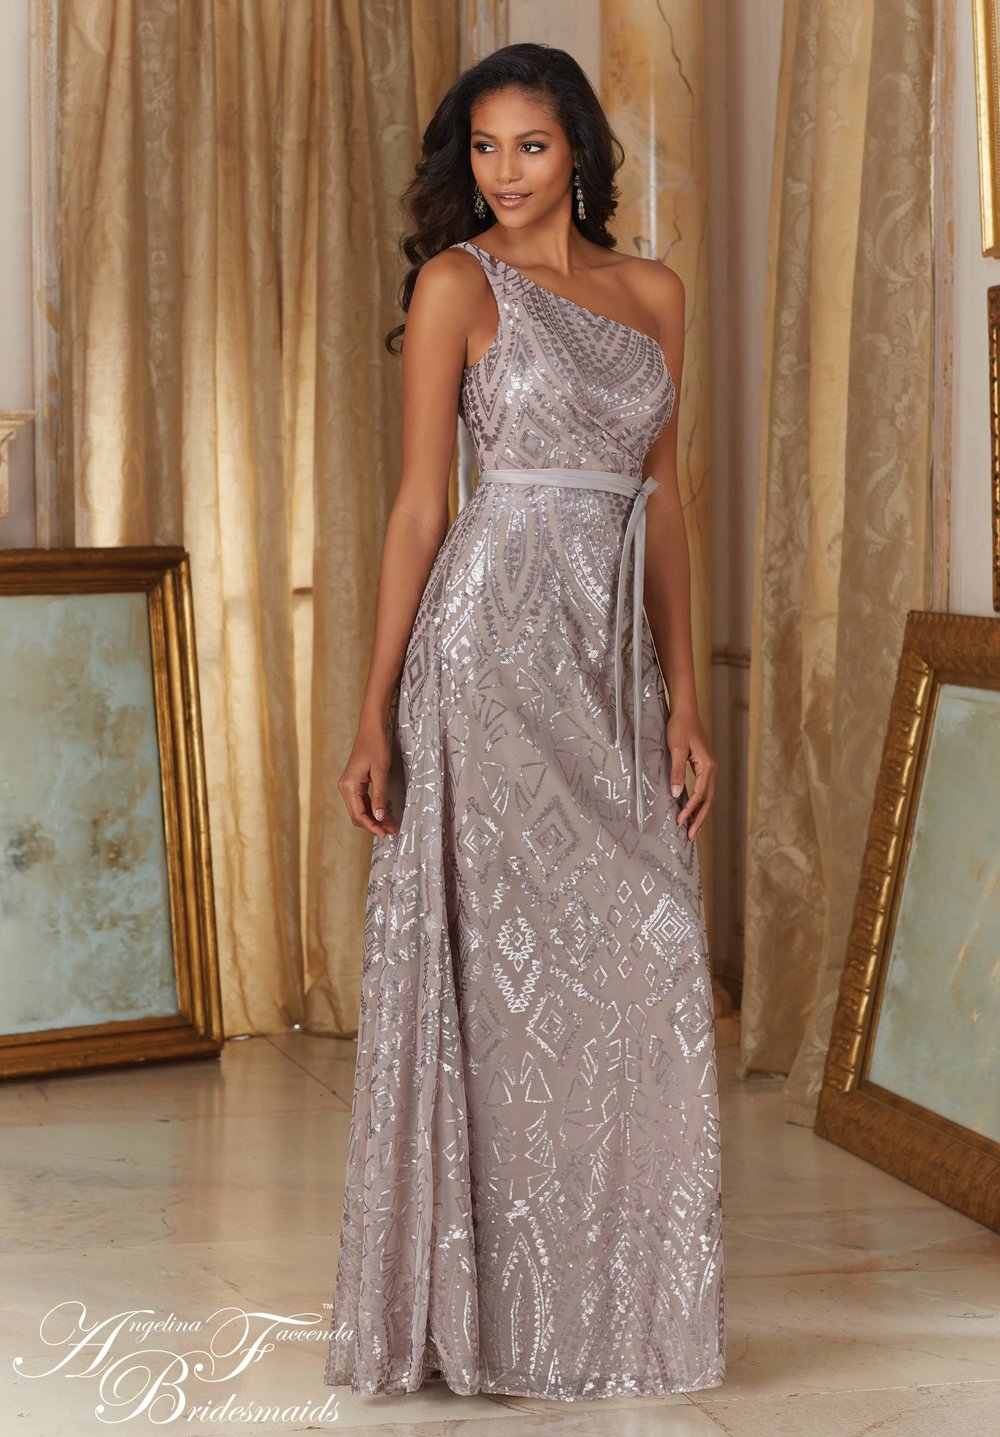 One Strap Sequin Bridesmaids Dress